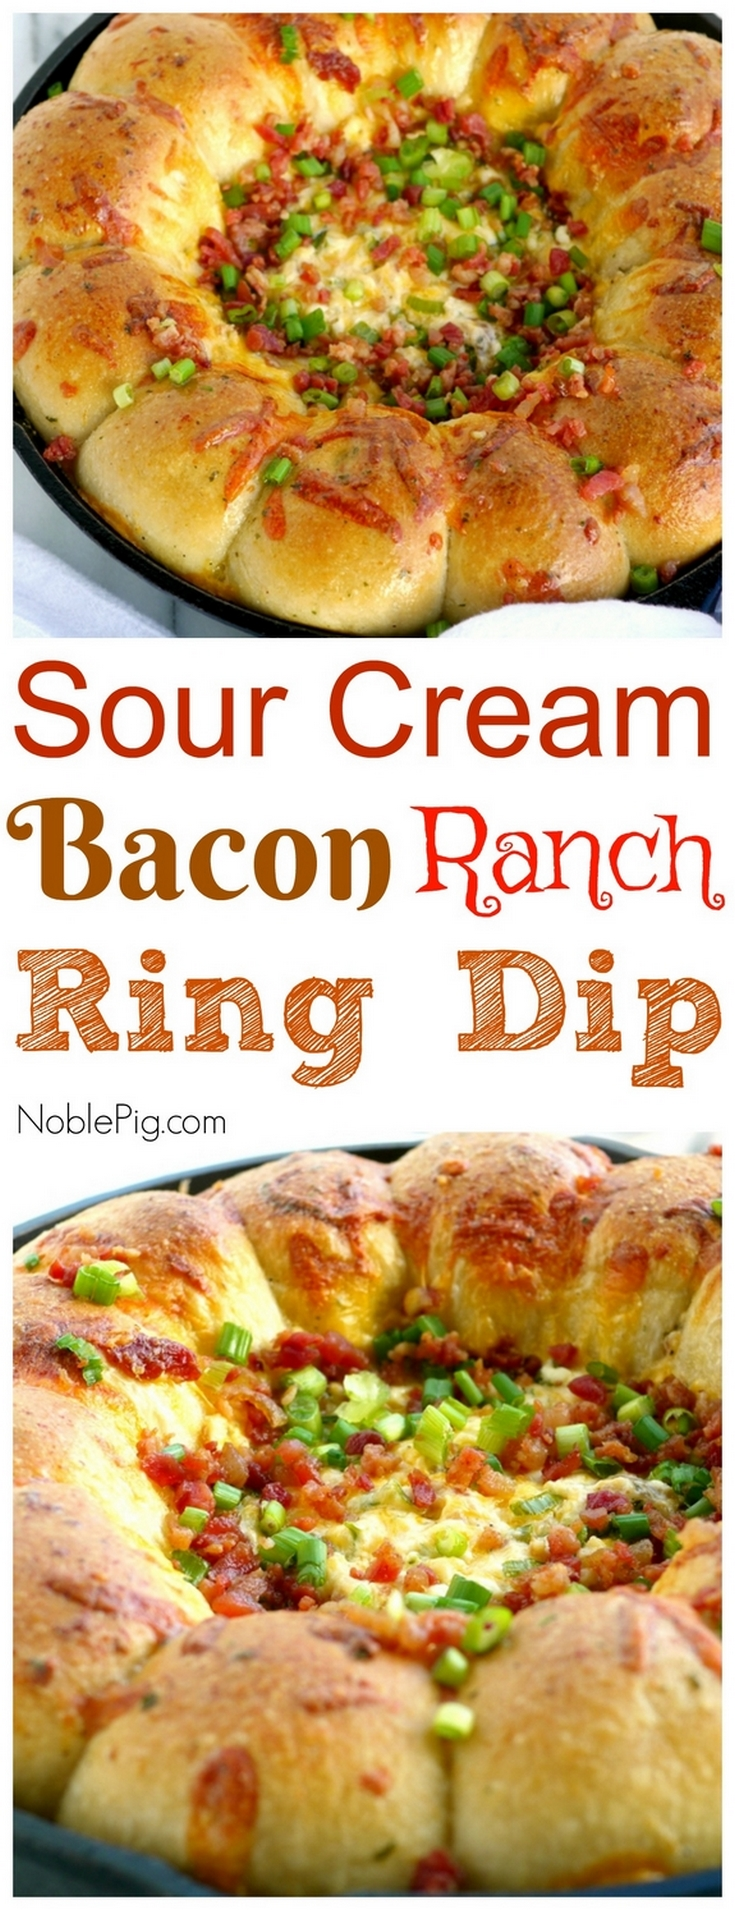 If you are looking for that perfectly addictive appetizer, this Sour Cream Bacon Ranch Ring Dip is going to have you enjoying every last bite. Surrounded by frozen, yeast dinner rolls that easily bake to perfection, this is a dip you are going to make again and again from NoblePig.com. via @cmpollak1